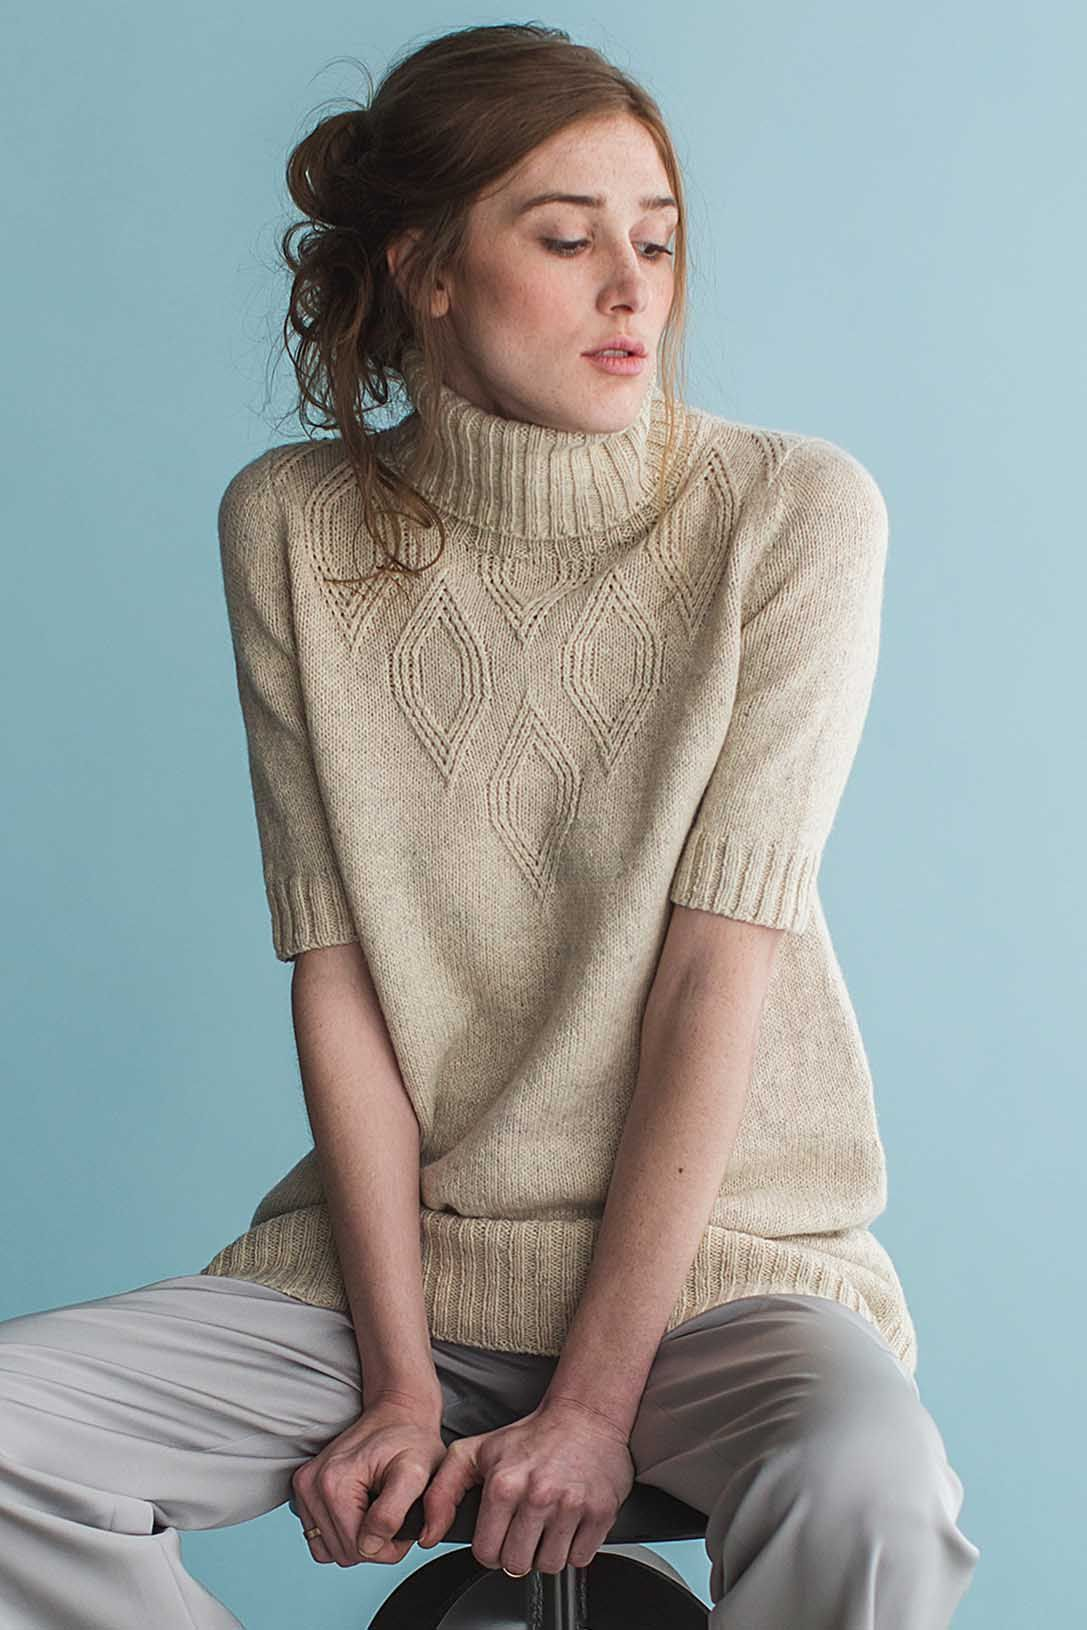 Pull On The Sloan Dress Over Tights Or Jeans And Set Out To Face The World This Piece Is Destined For Constan Autumn Knitwear Knitwear Tunic Knitting Patterns [ 1630 x 1087 Pixel ]